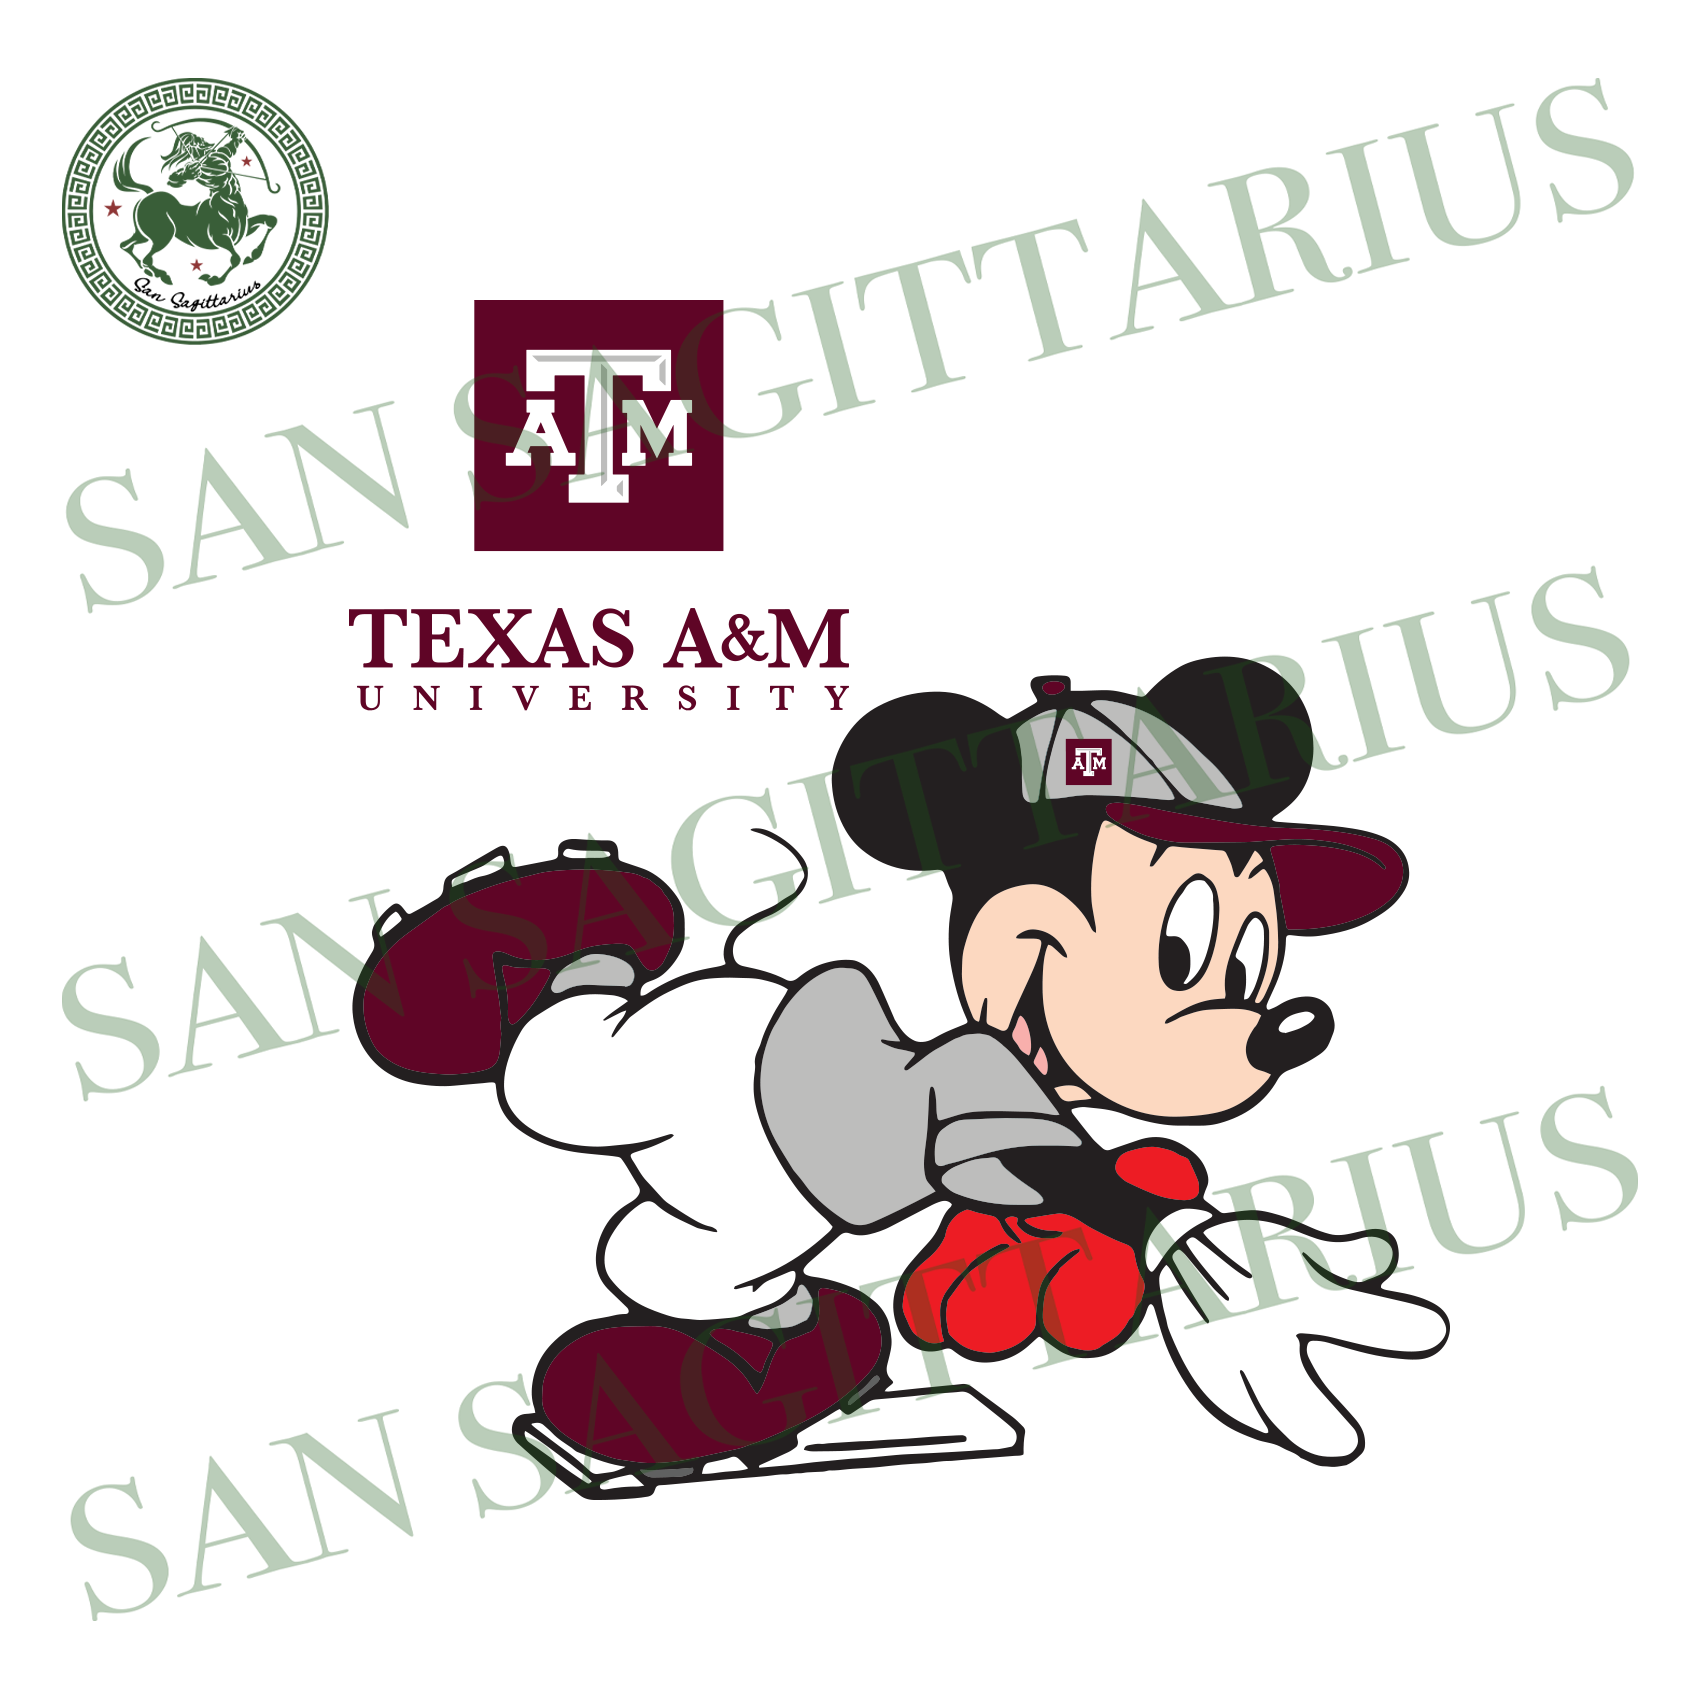 Texas A&M And Mickey, Sport Svg, Texas A&M Svg, Football Svg, Texas A&M Shirt, Texas A&M Logo, NCAA Sport Svg, NCAA Svg, Texas A&M University Svg, Mickey Svg, Mickey Love, Mickey Shirt